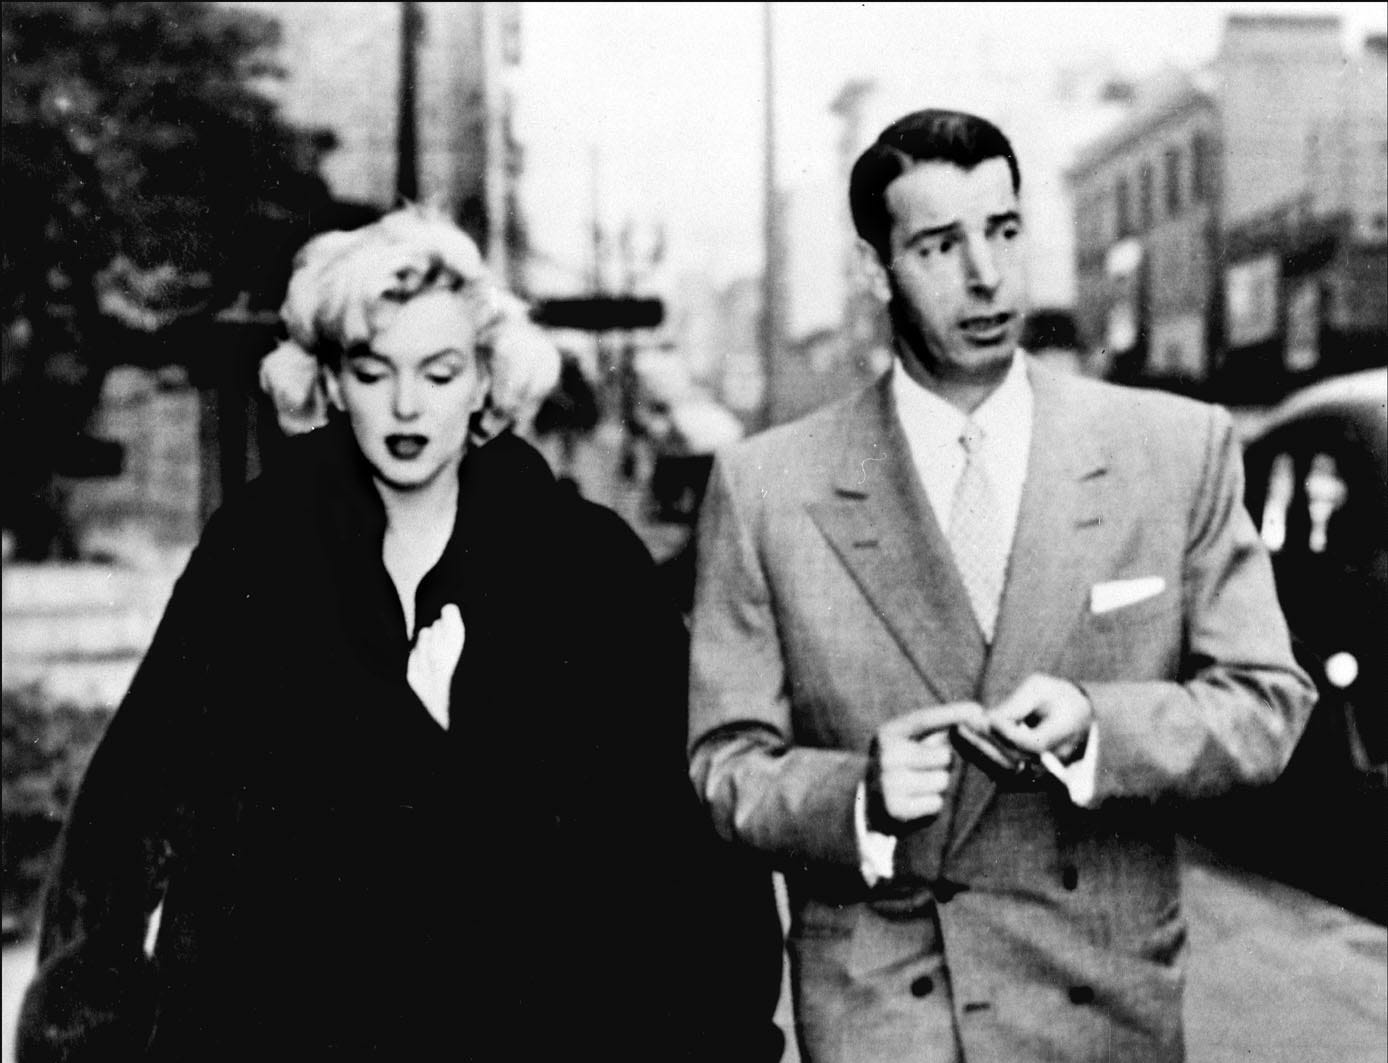 (FILE PHOTO) 14th January 2014 marks 60 years since iconic American actress Marilyn Monroe married American Baseball player Joe DiMaggio in San Francisco on January 14, 1954. DiMaggio and Monroe were divorced in October 1954, just 274 days after they were married, with the actress citing mental cruelty in the divorce petition.   SAN FRANCISCO, CA - JANUARY 1:  Picture dated 1954 showing actress Marilyn Monroe with her second husband American baseball player Joe DiMaggio.  (Photo credit should read STF/AFP/Getty Images) ORG XMIT: 156616713 ORIG FILE ID: 52016304